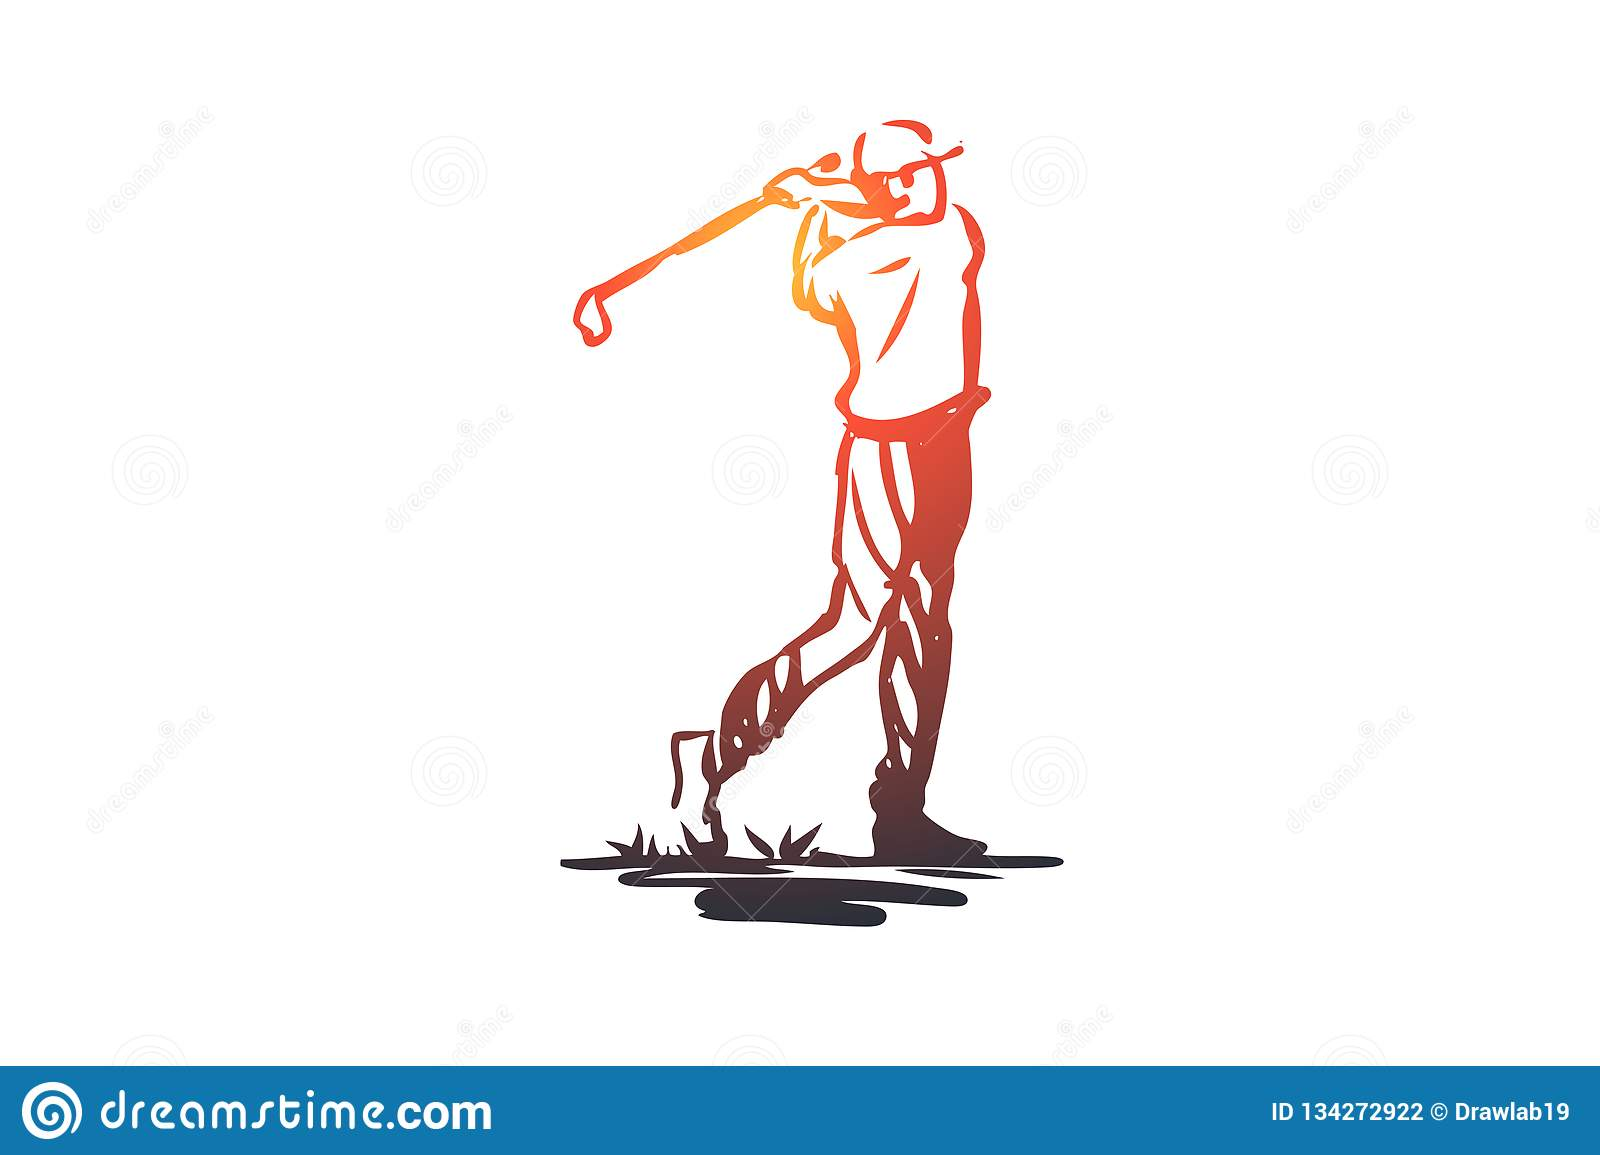 Golf, tournament, game, sport, golfer concept. Hand drawn isolated vector.